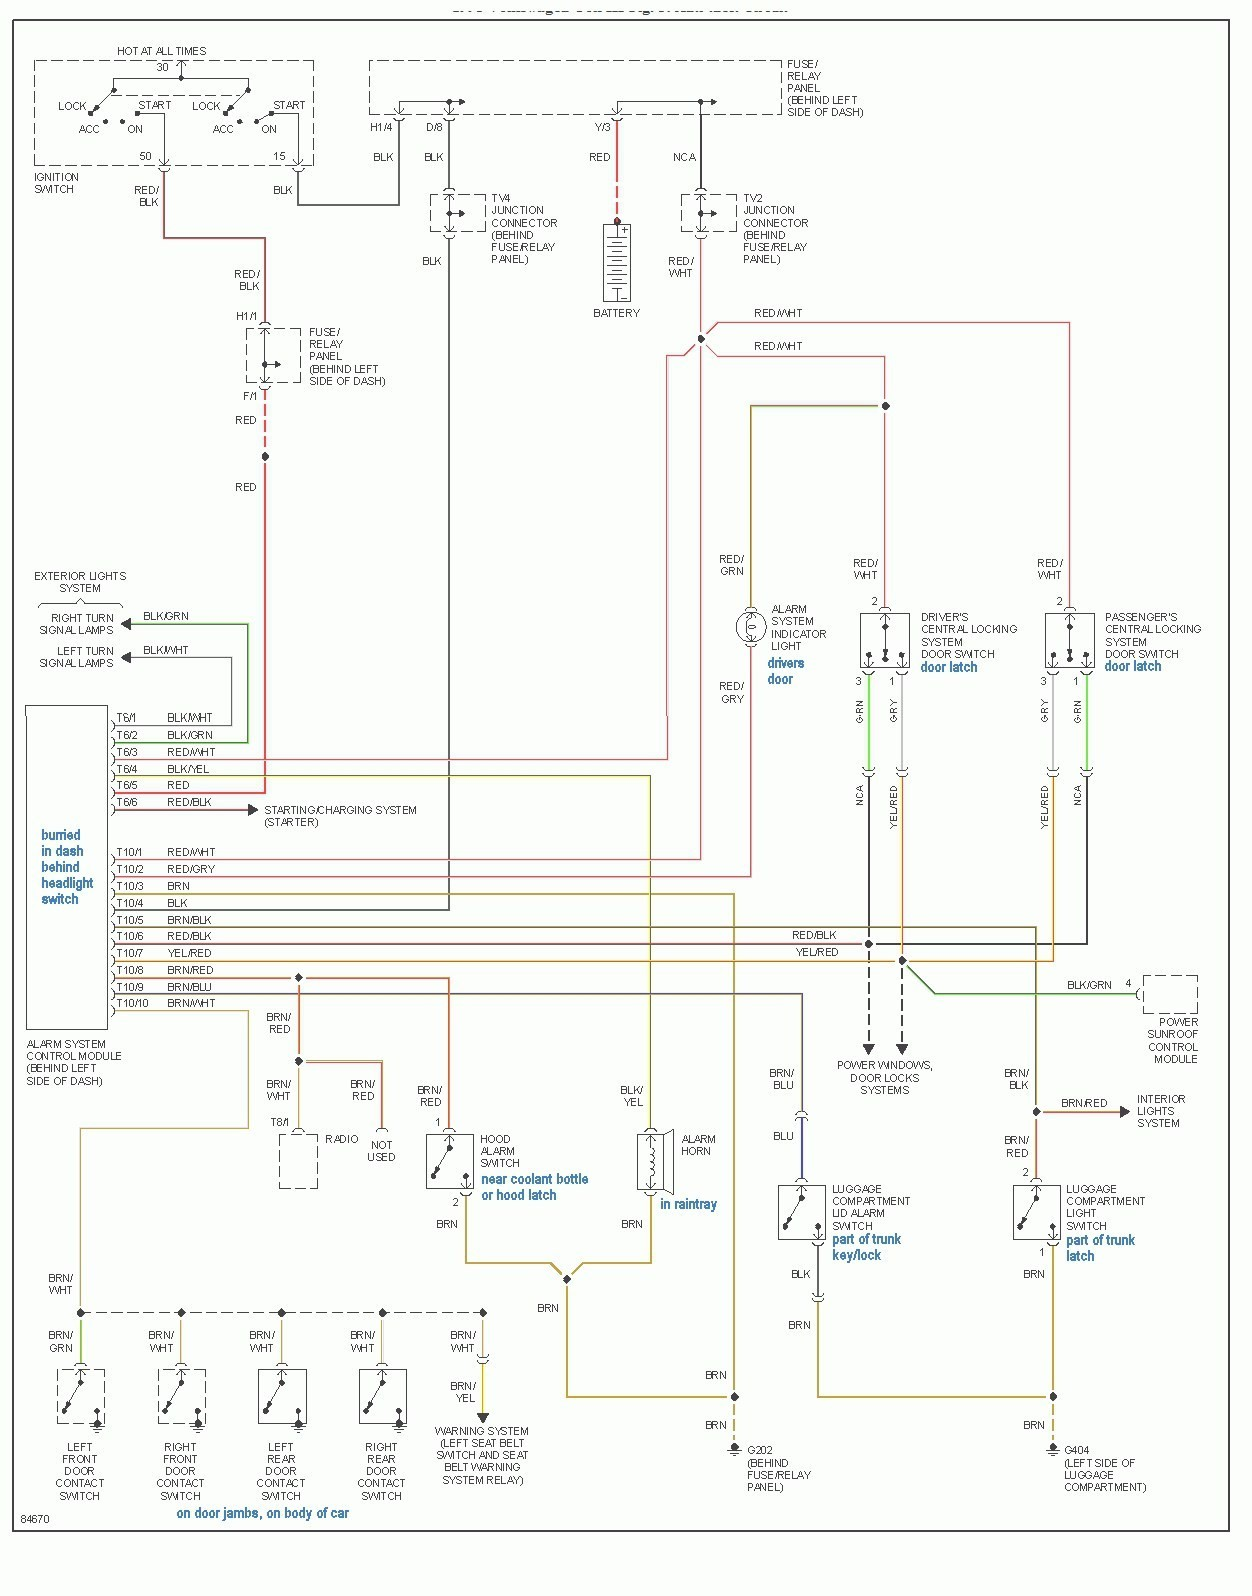 2010 Jetta Wiring Diagram FULL Version HD Quality Wiring Diagram -  TINADIAGRAM.LABO-WEB.FRDiagram Database